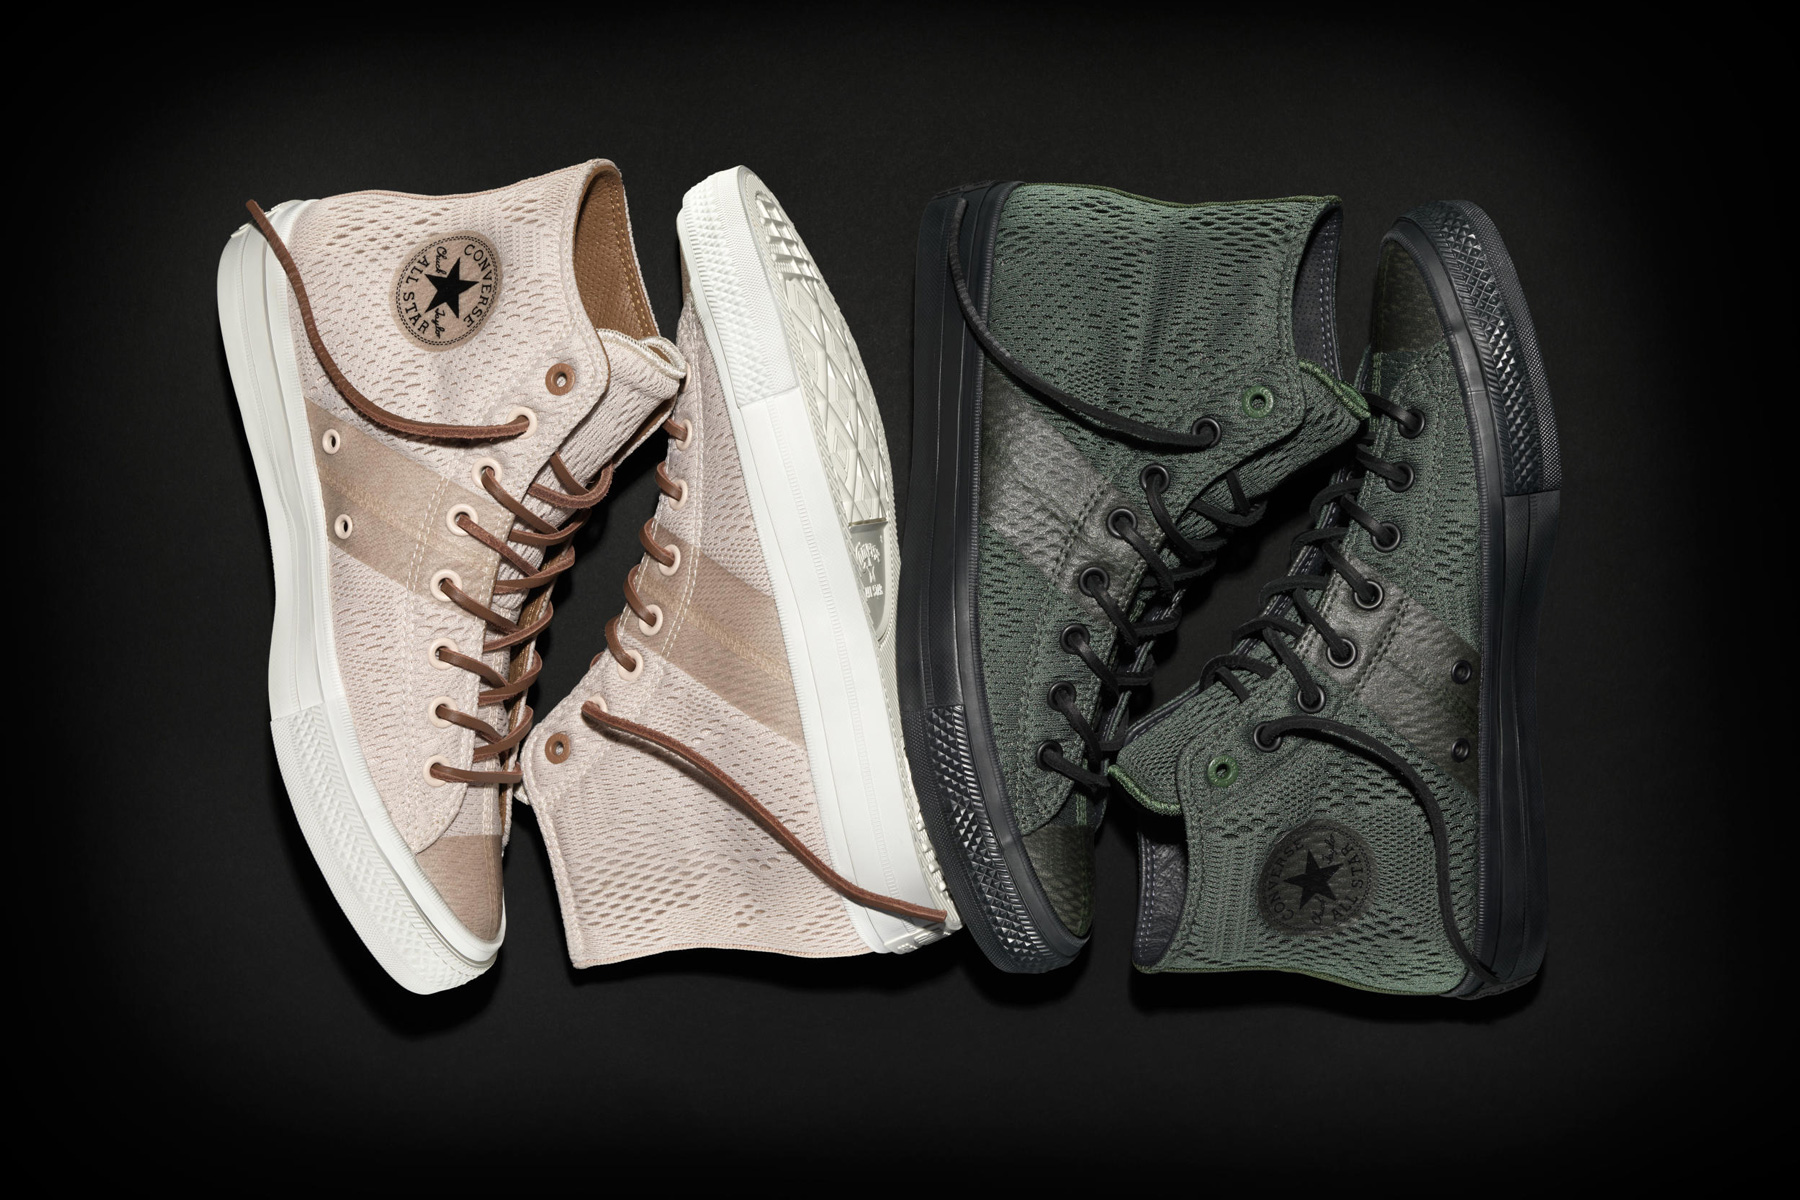 Converse Wraps the Chuck Taylor II in Engineered Mesh